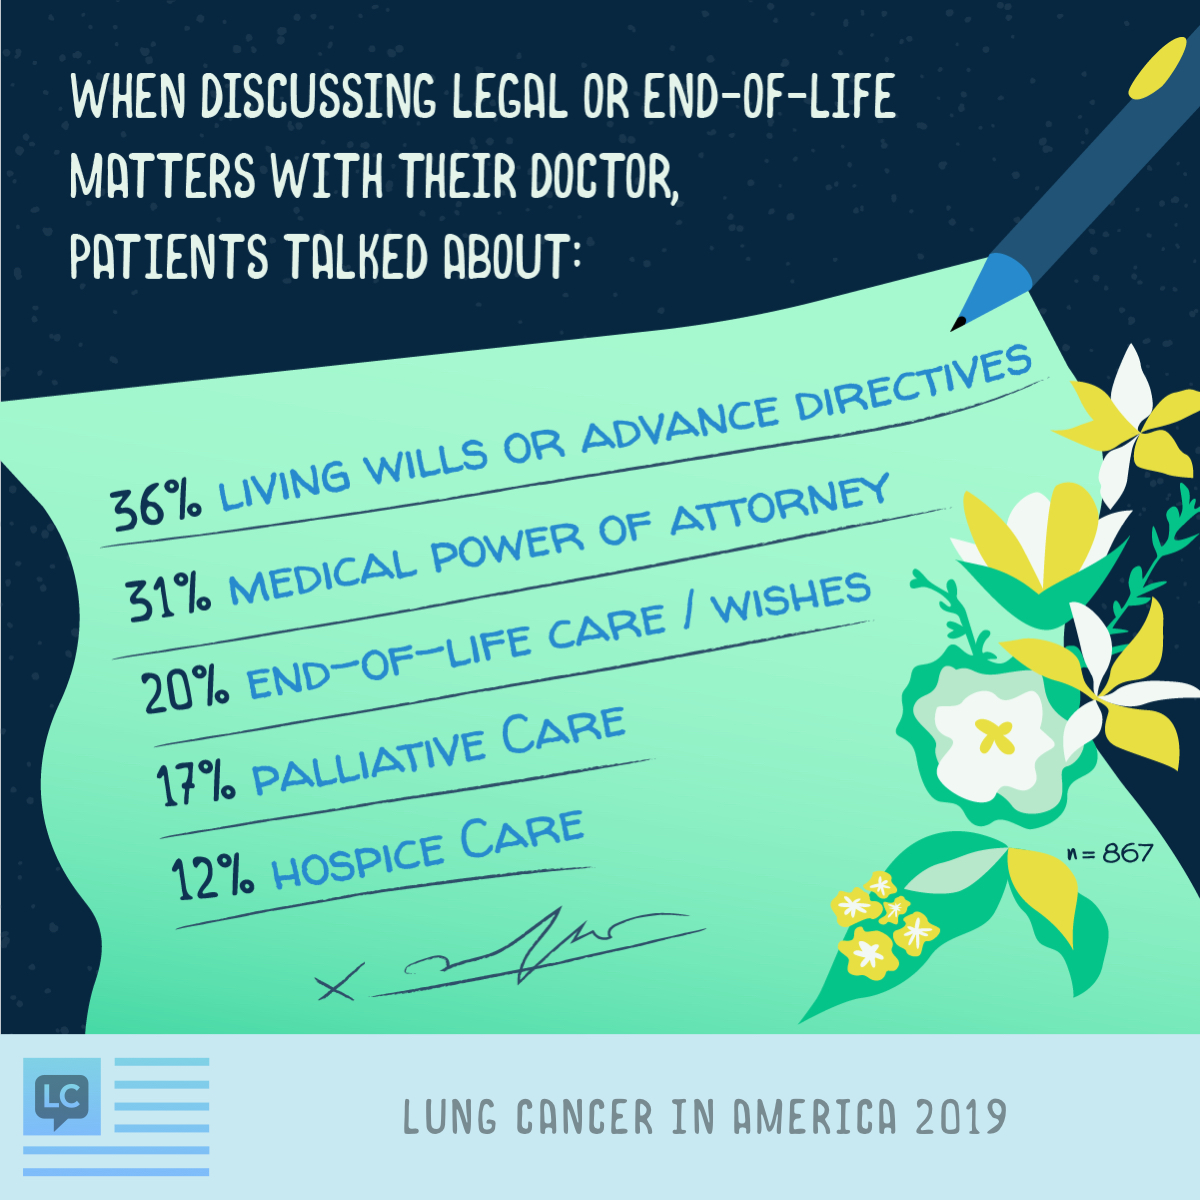 Patients talked about living wills or advanced directives (36%), medical power of attorney (31%), end-of-life care (20%), palliative care (17%), and hospice care (12%) when discussing legal or end-of-life matters with doctors.